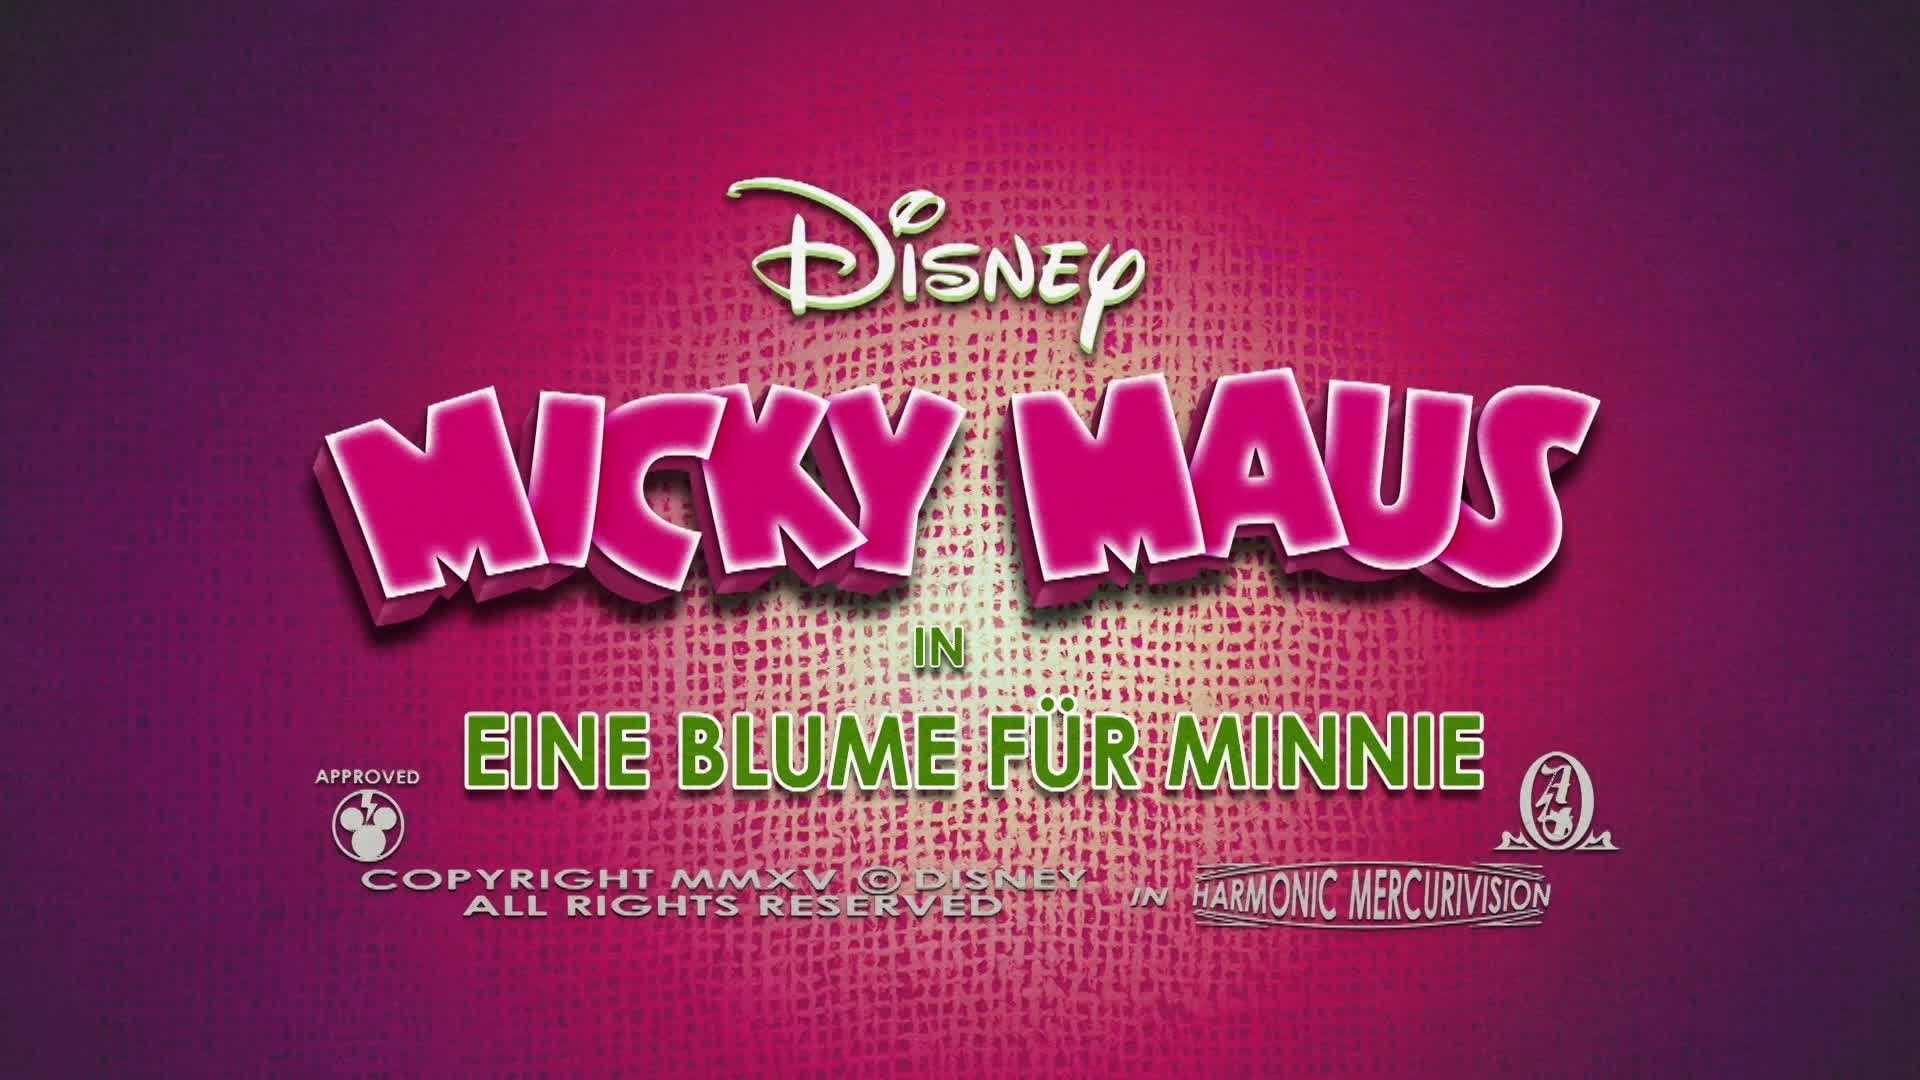 disney micky maus disney channel shows. Black Bedroom Furniture Sets. Home Design Ideas